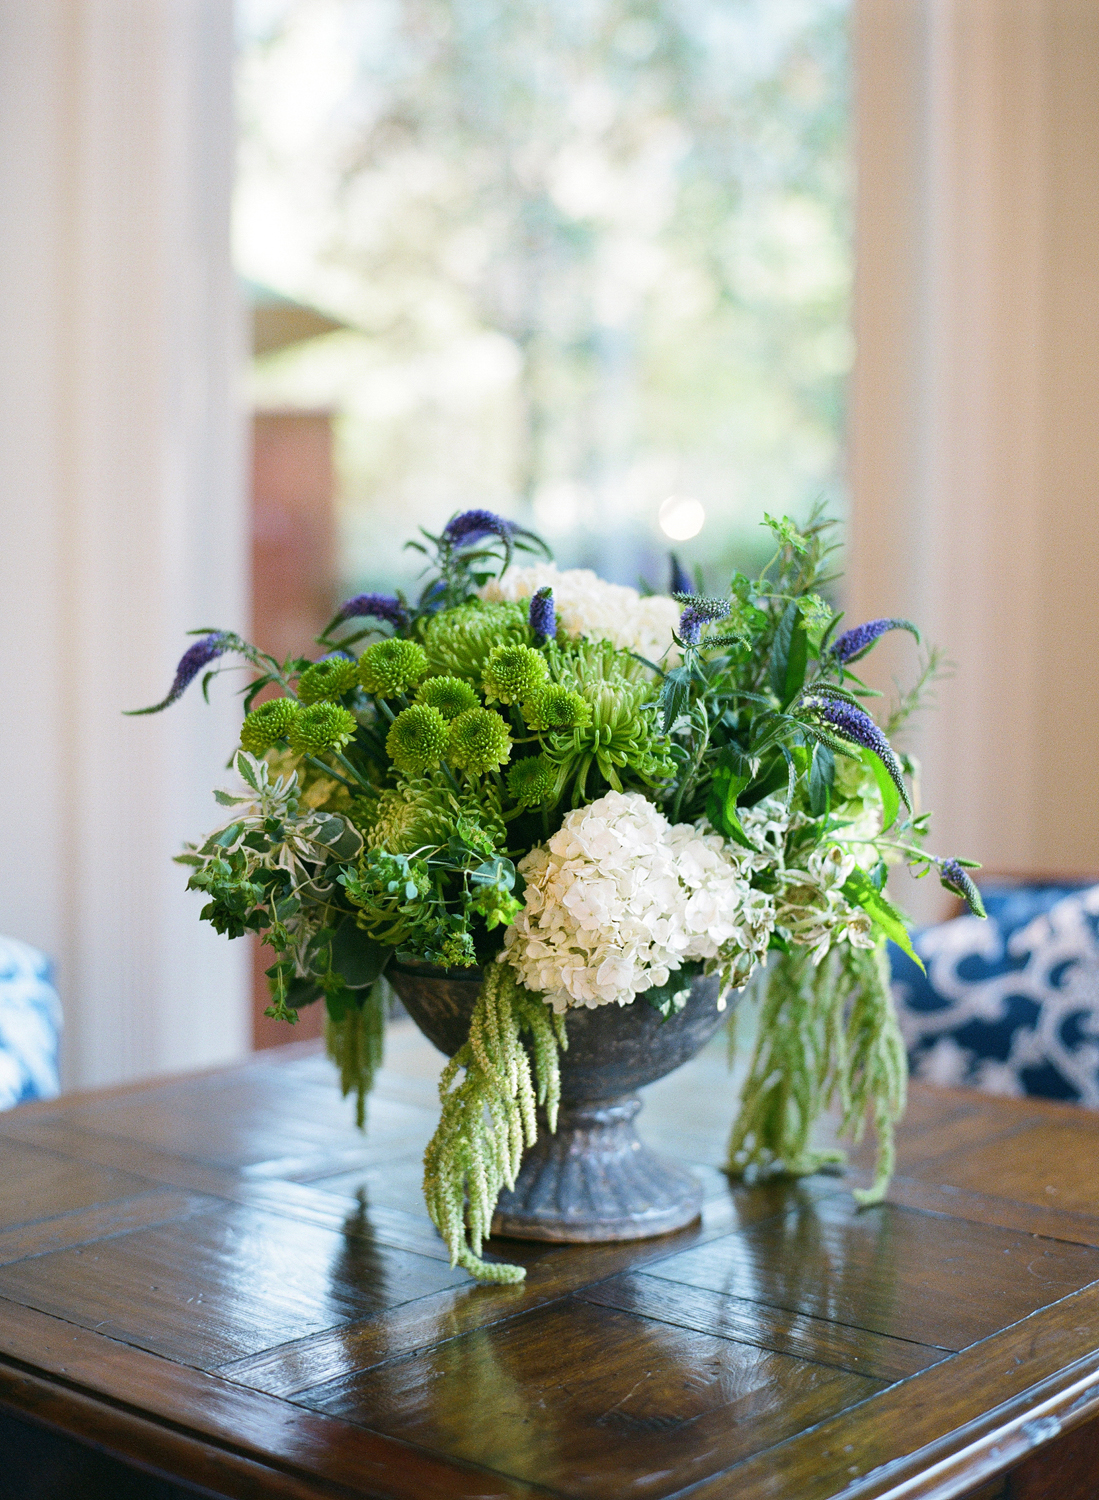 Green and white potted flower arrangement